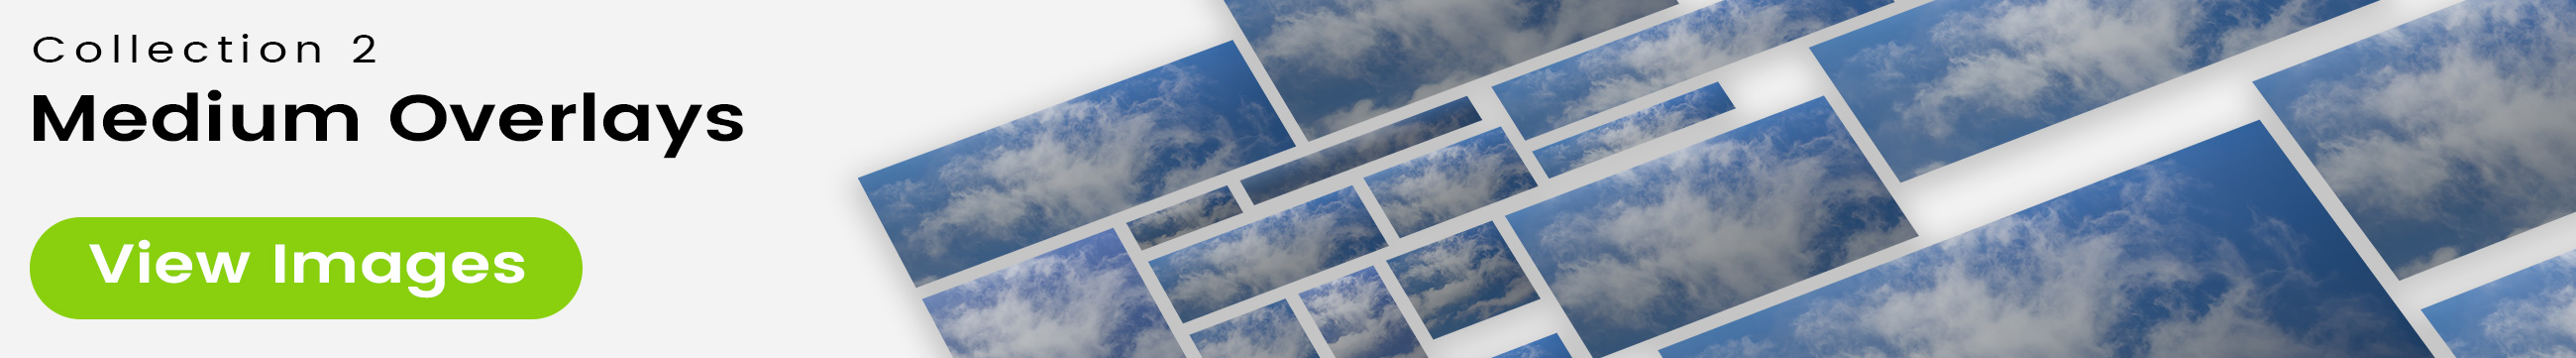 See 25 bonus images included with clouds stock image 9481. Collection 2 of 4 features a medium-dark overlay design.